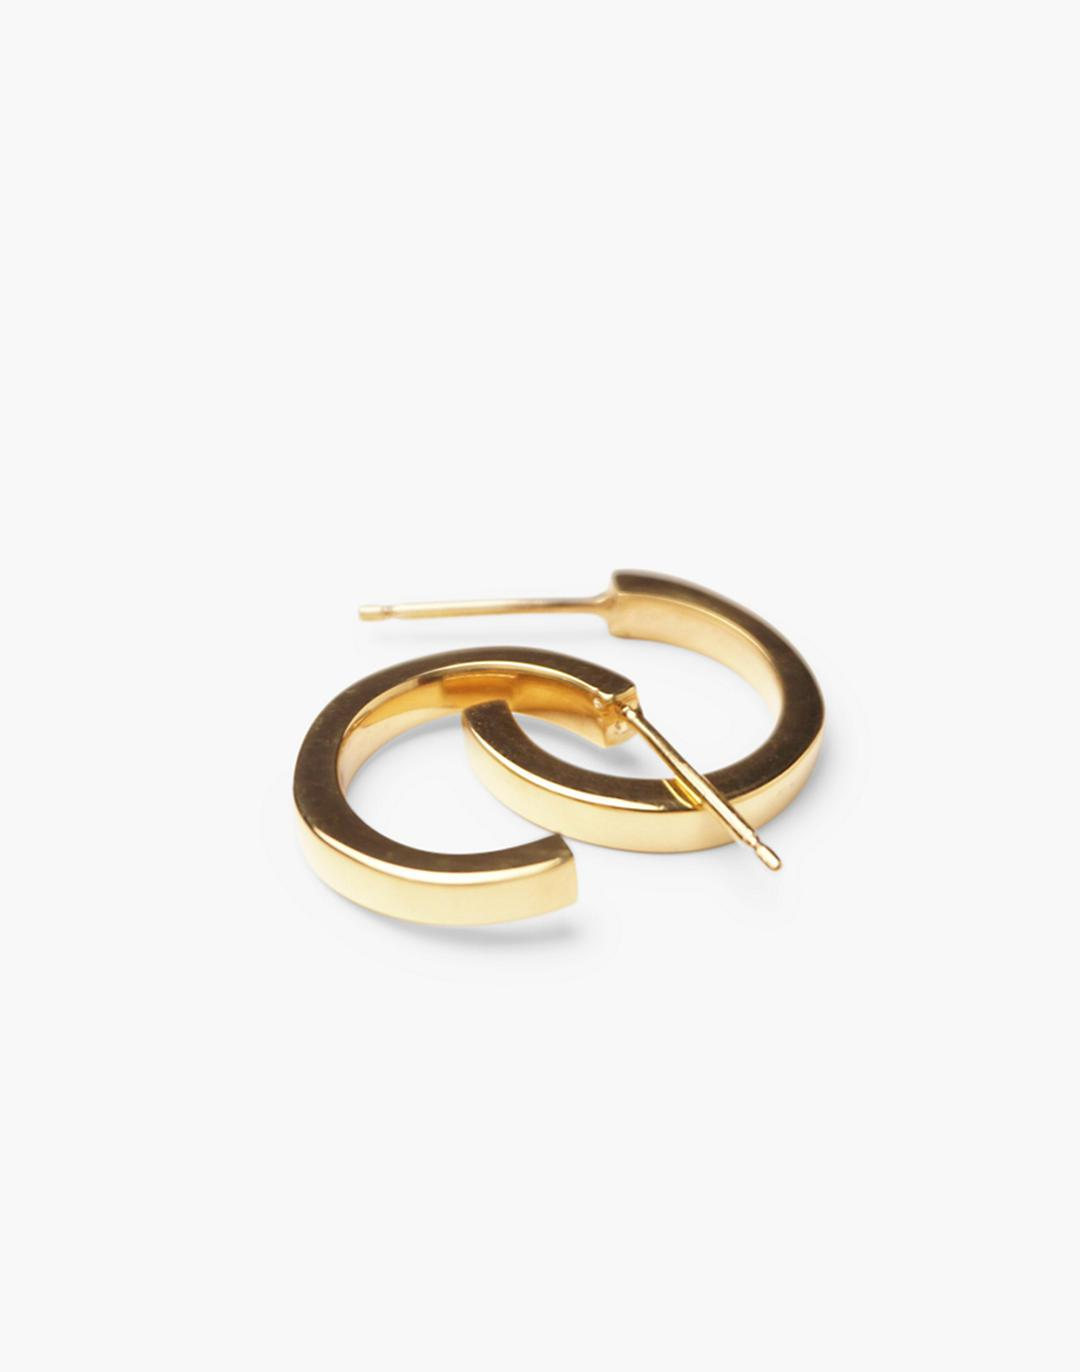 Charlotte Cauwe Studio Perfect Hoops in Gold